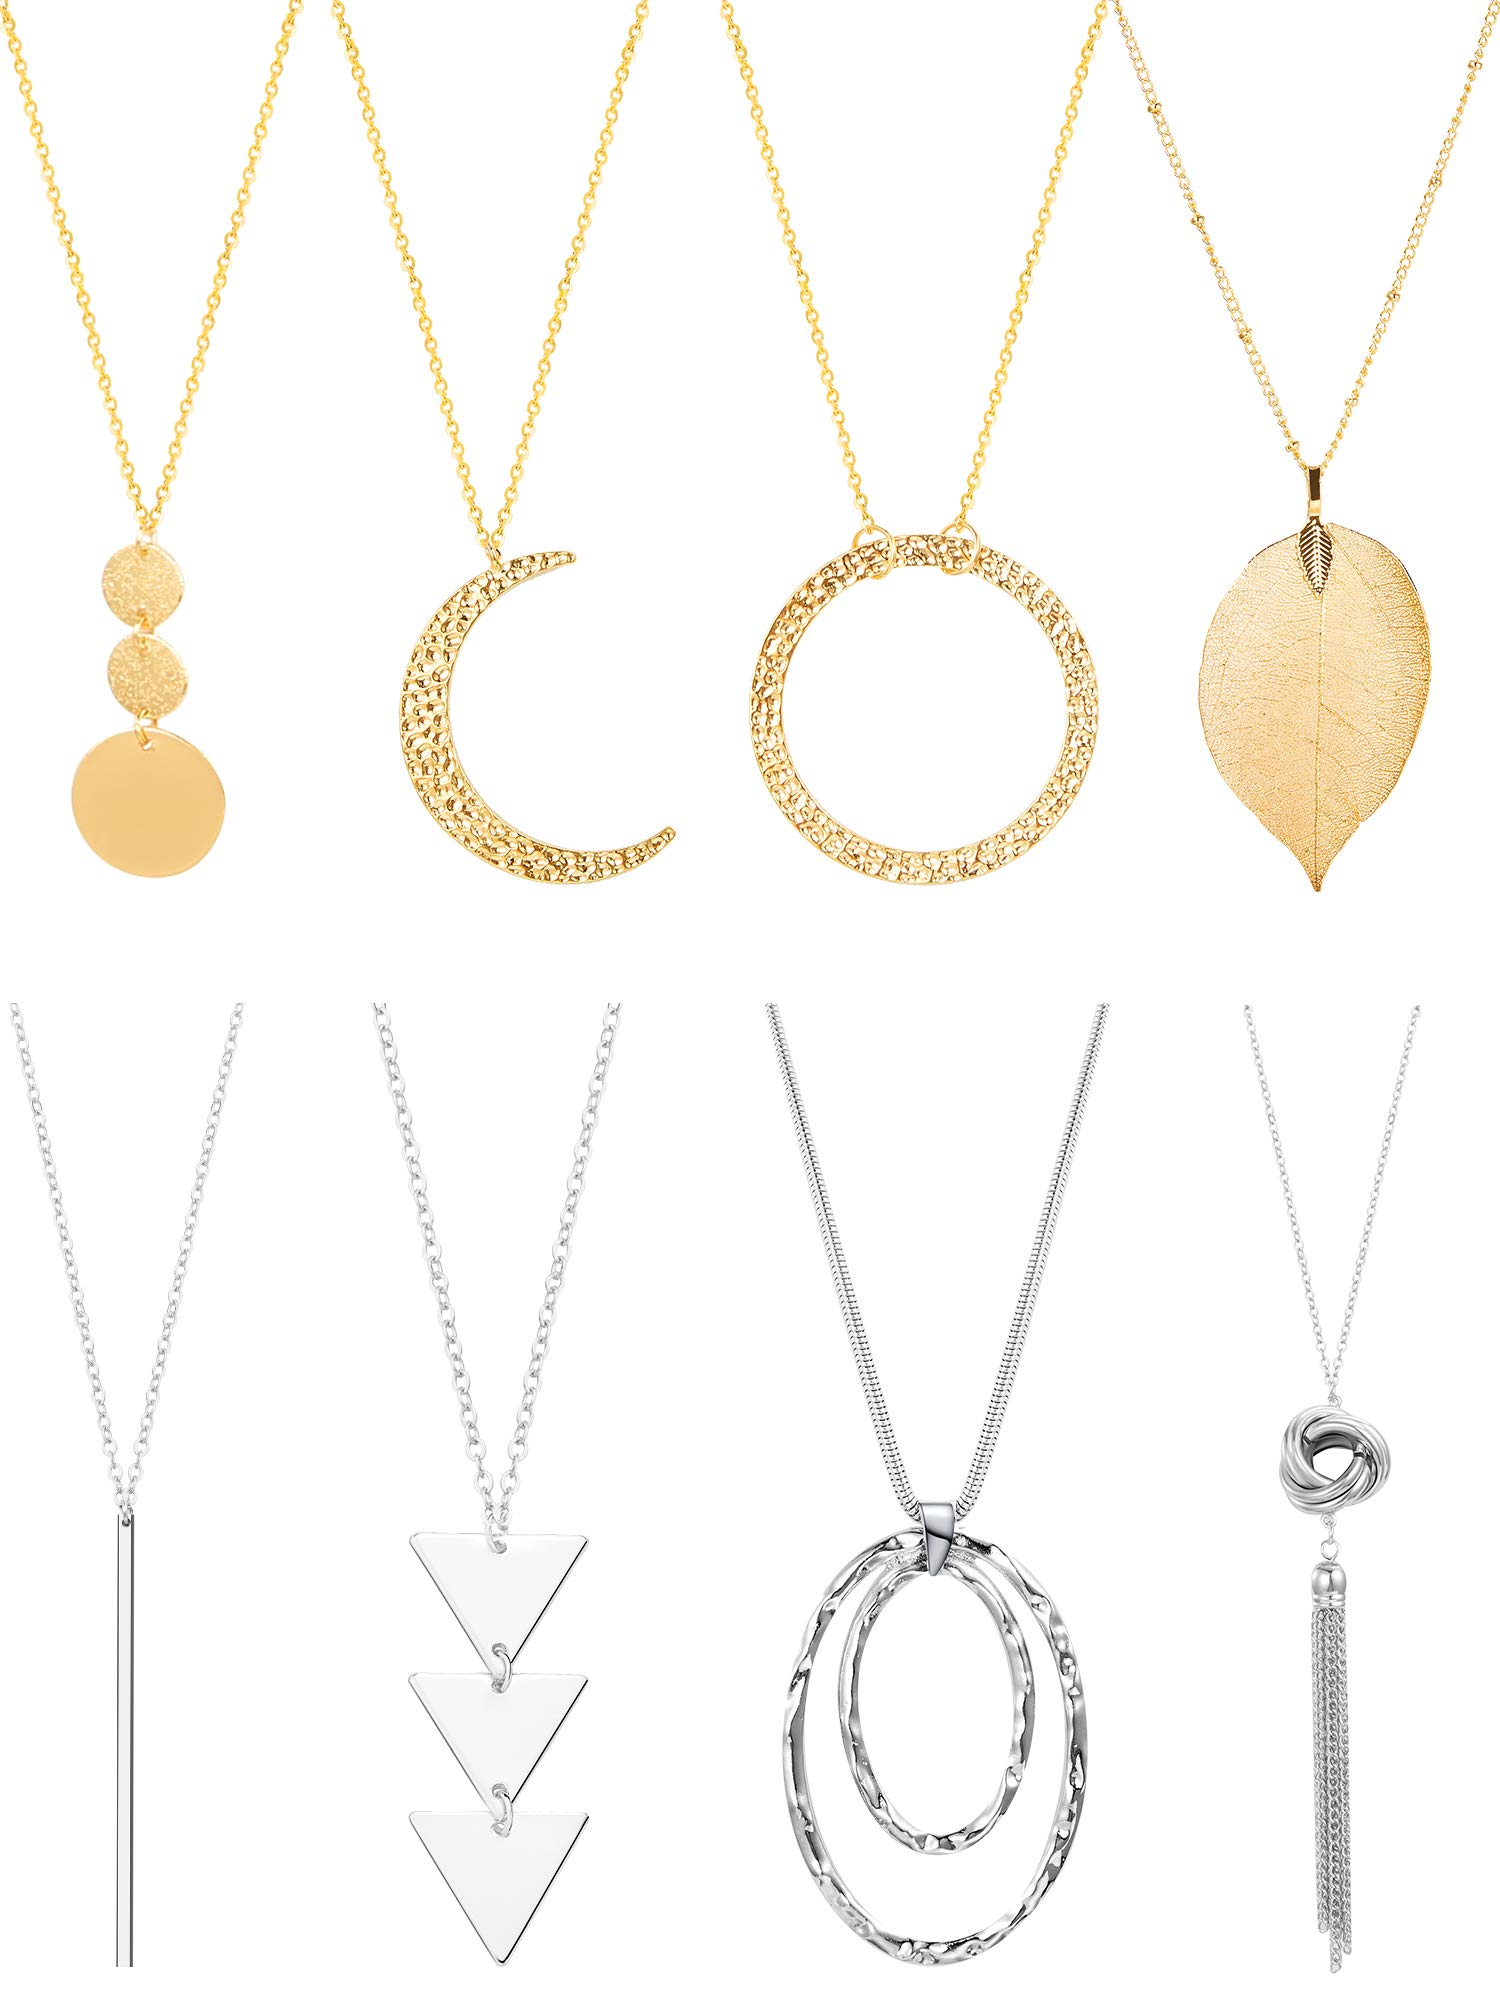 8 Pieces Women Y Layer Long Pendant Necklace Set Simple Bar Tassel Necklace Chain by Tatuo